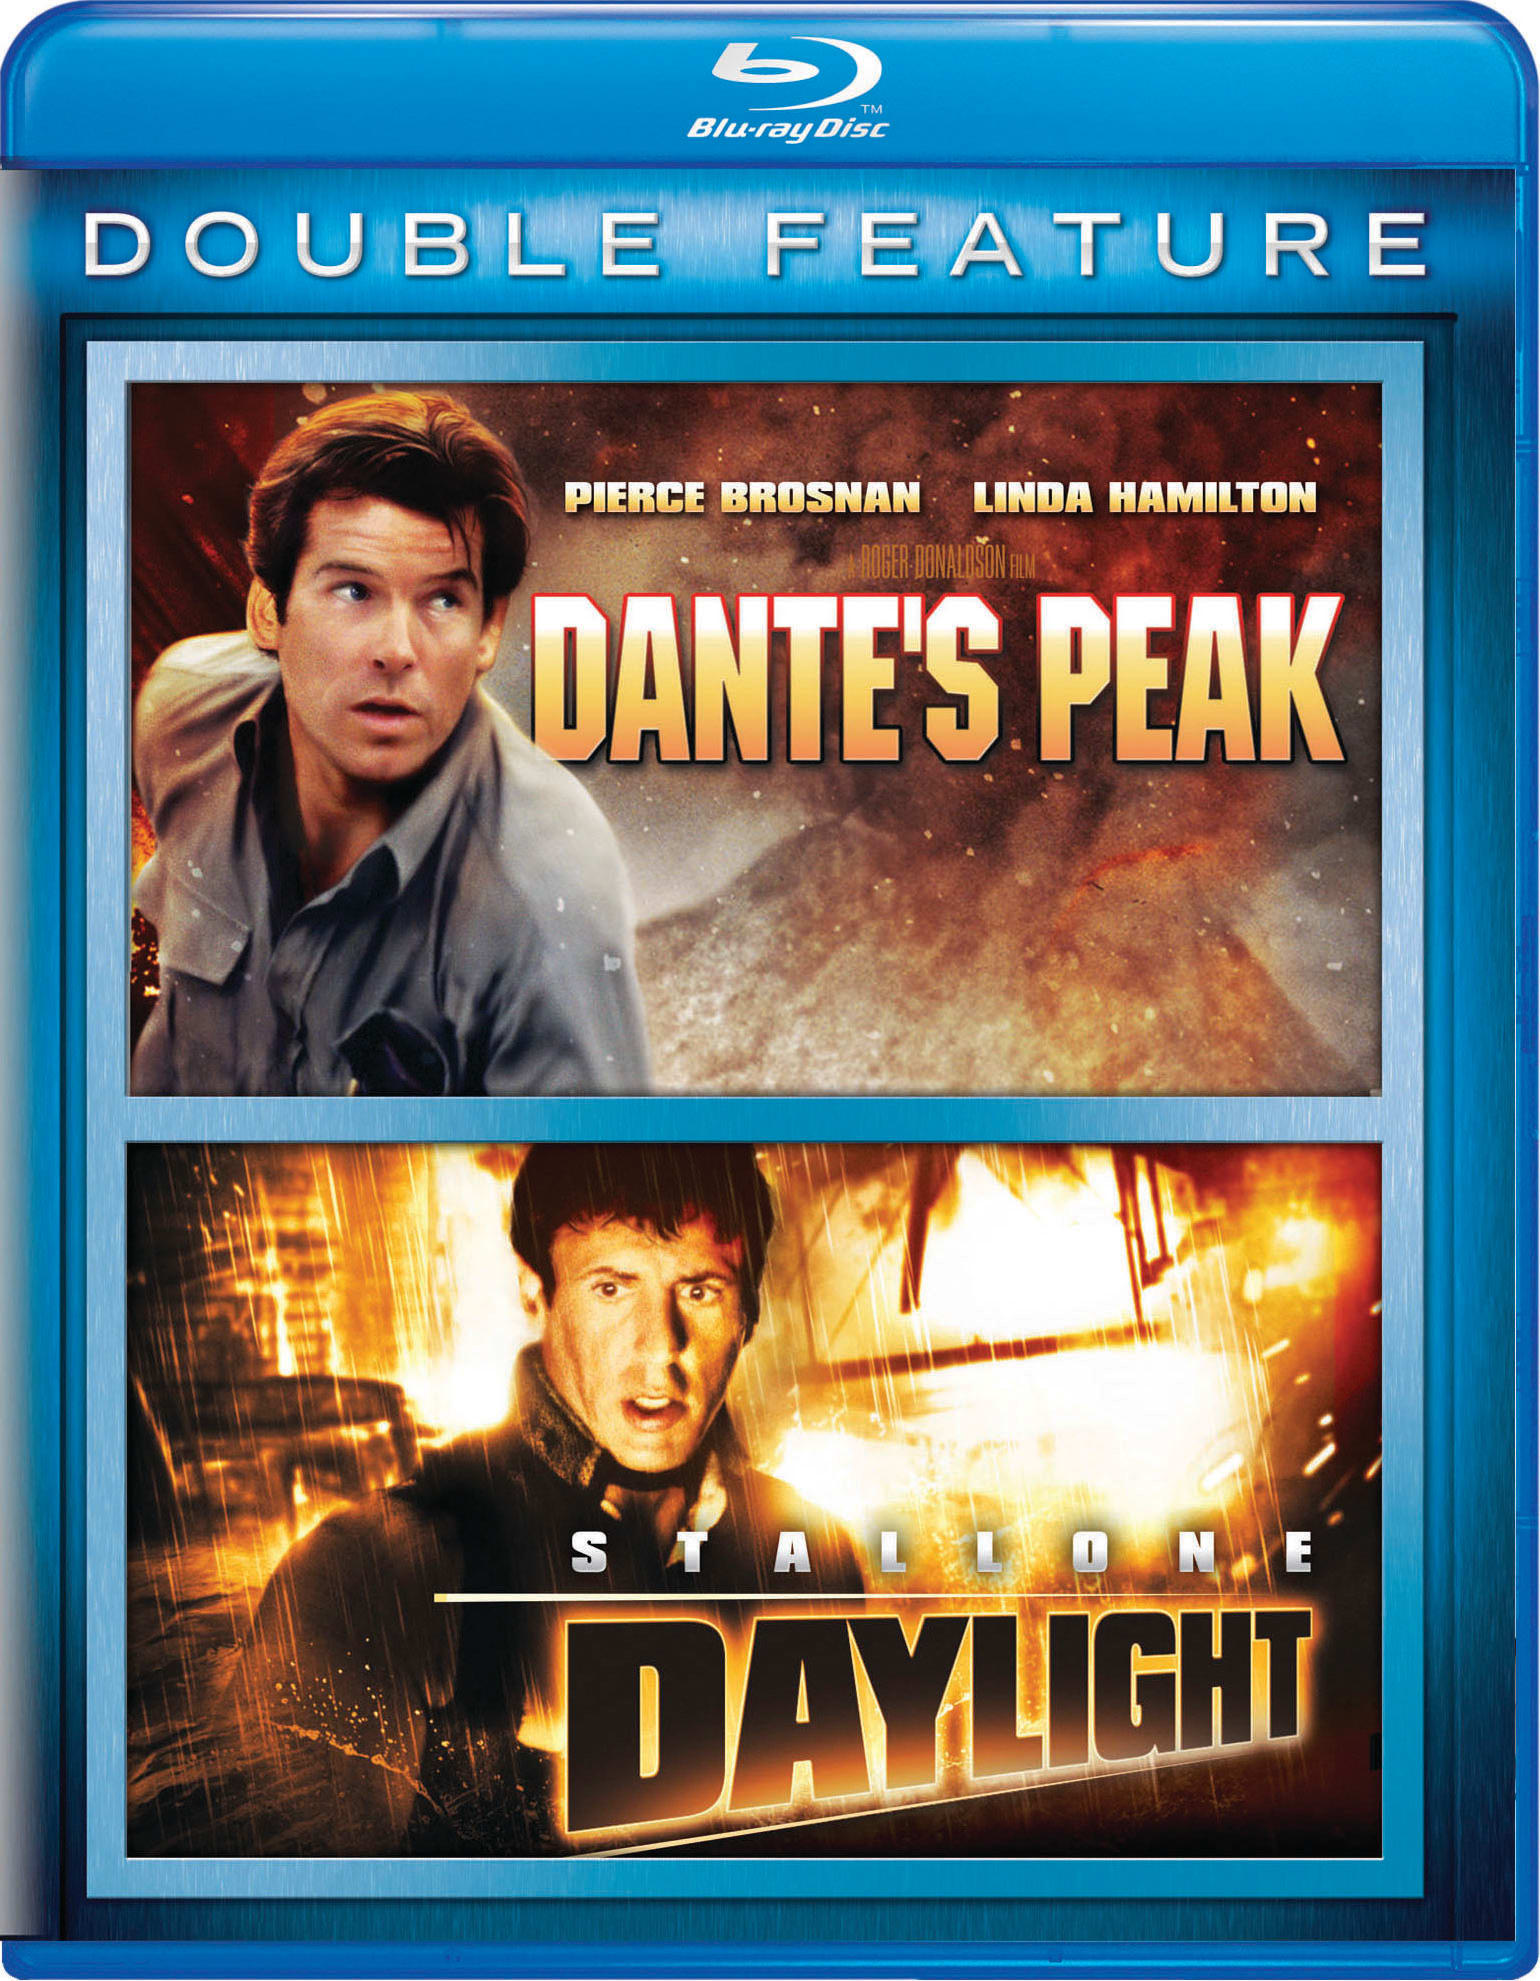 Dante's Peak/Daylight [Blu-ray]